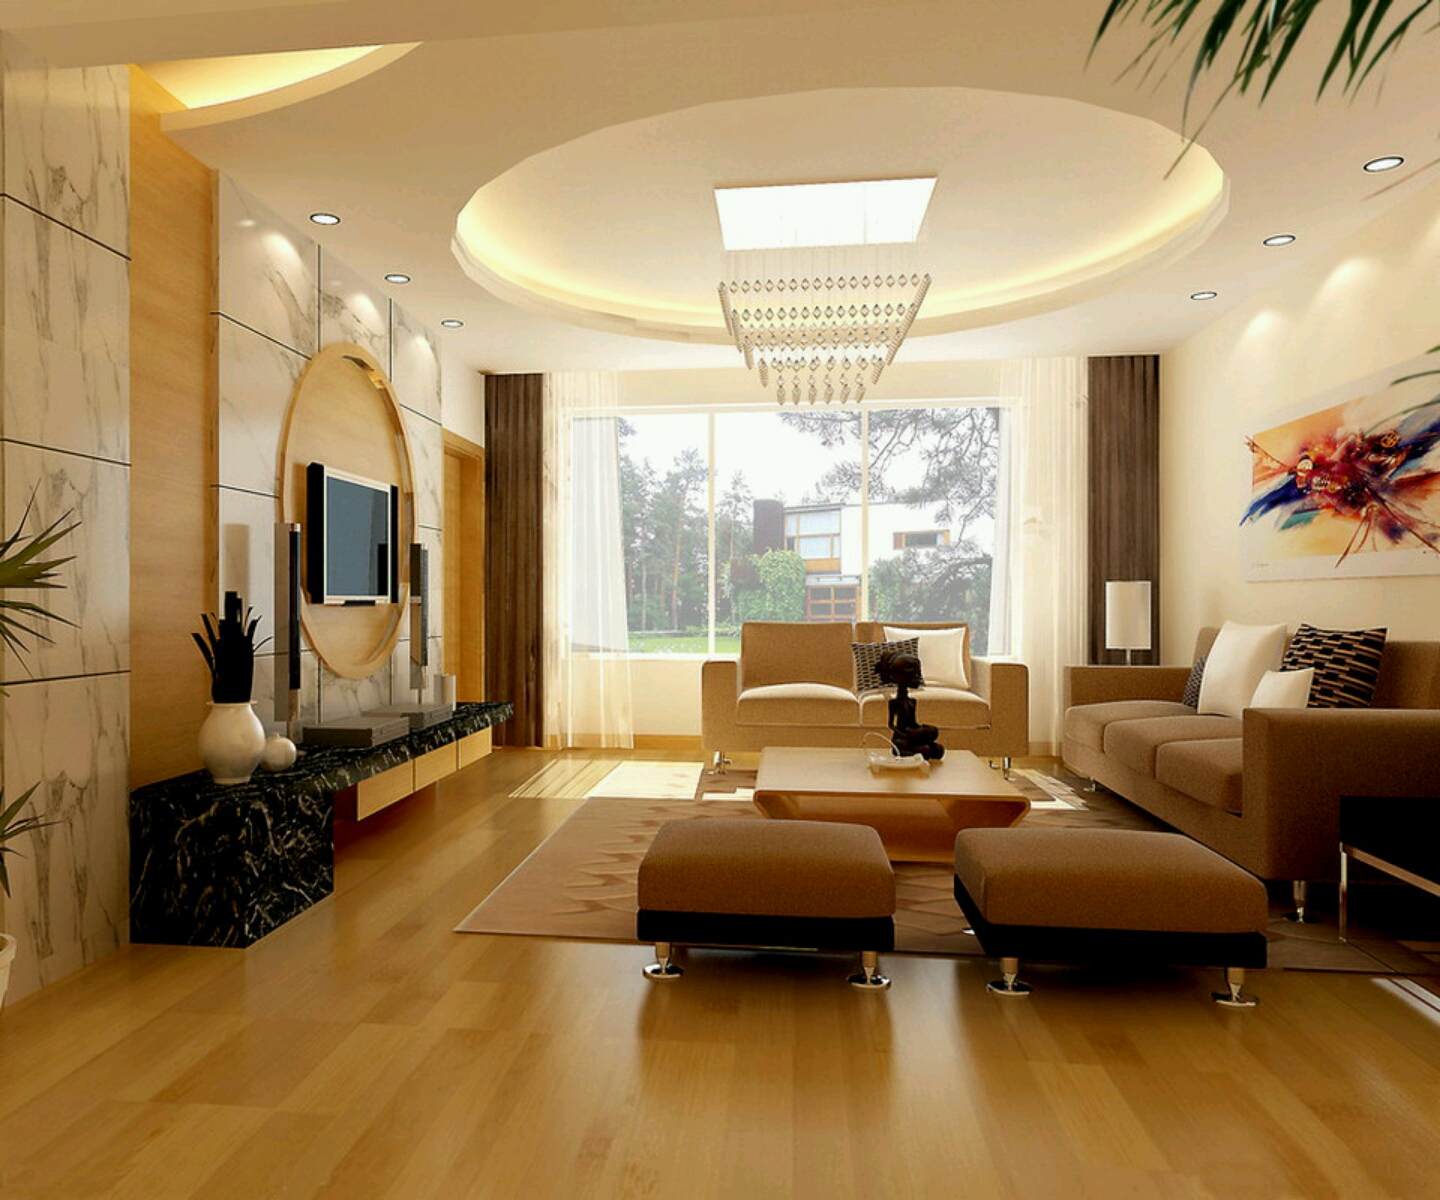 Modern interior decoration living rooms ceiling designs for Ceiling styles ideas